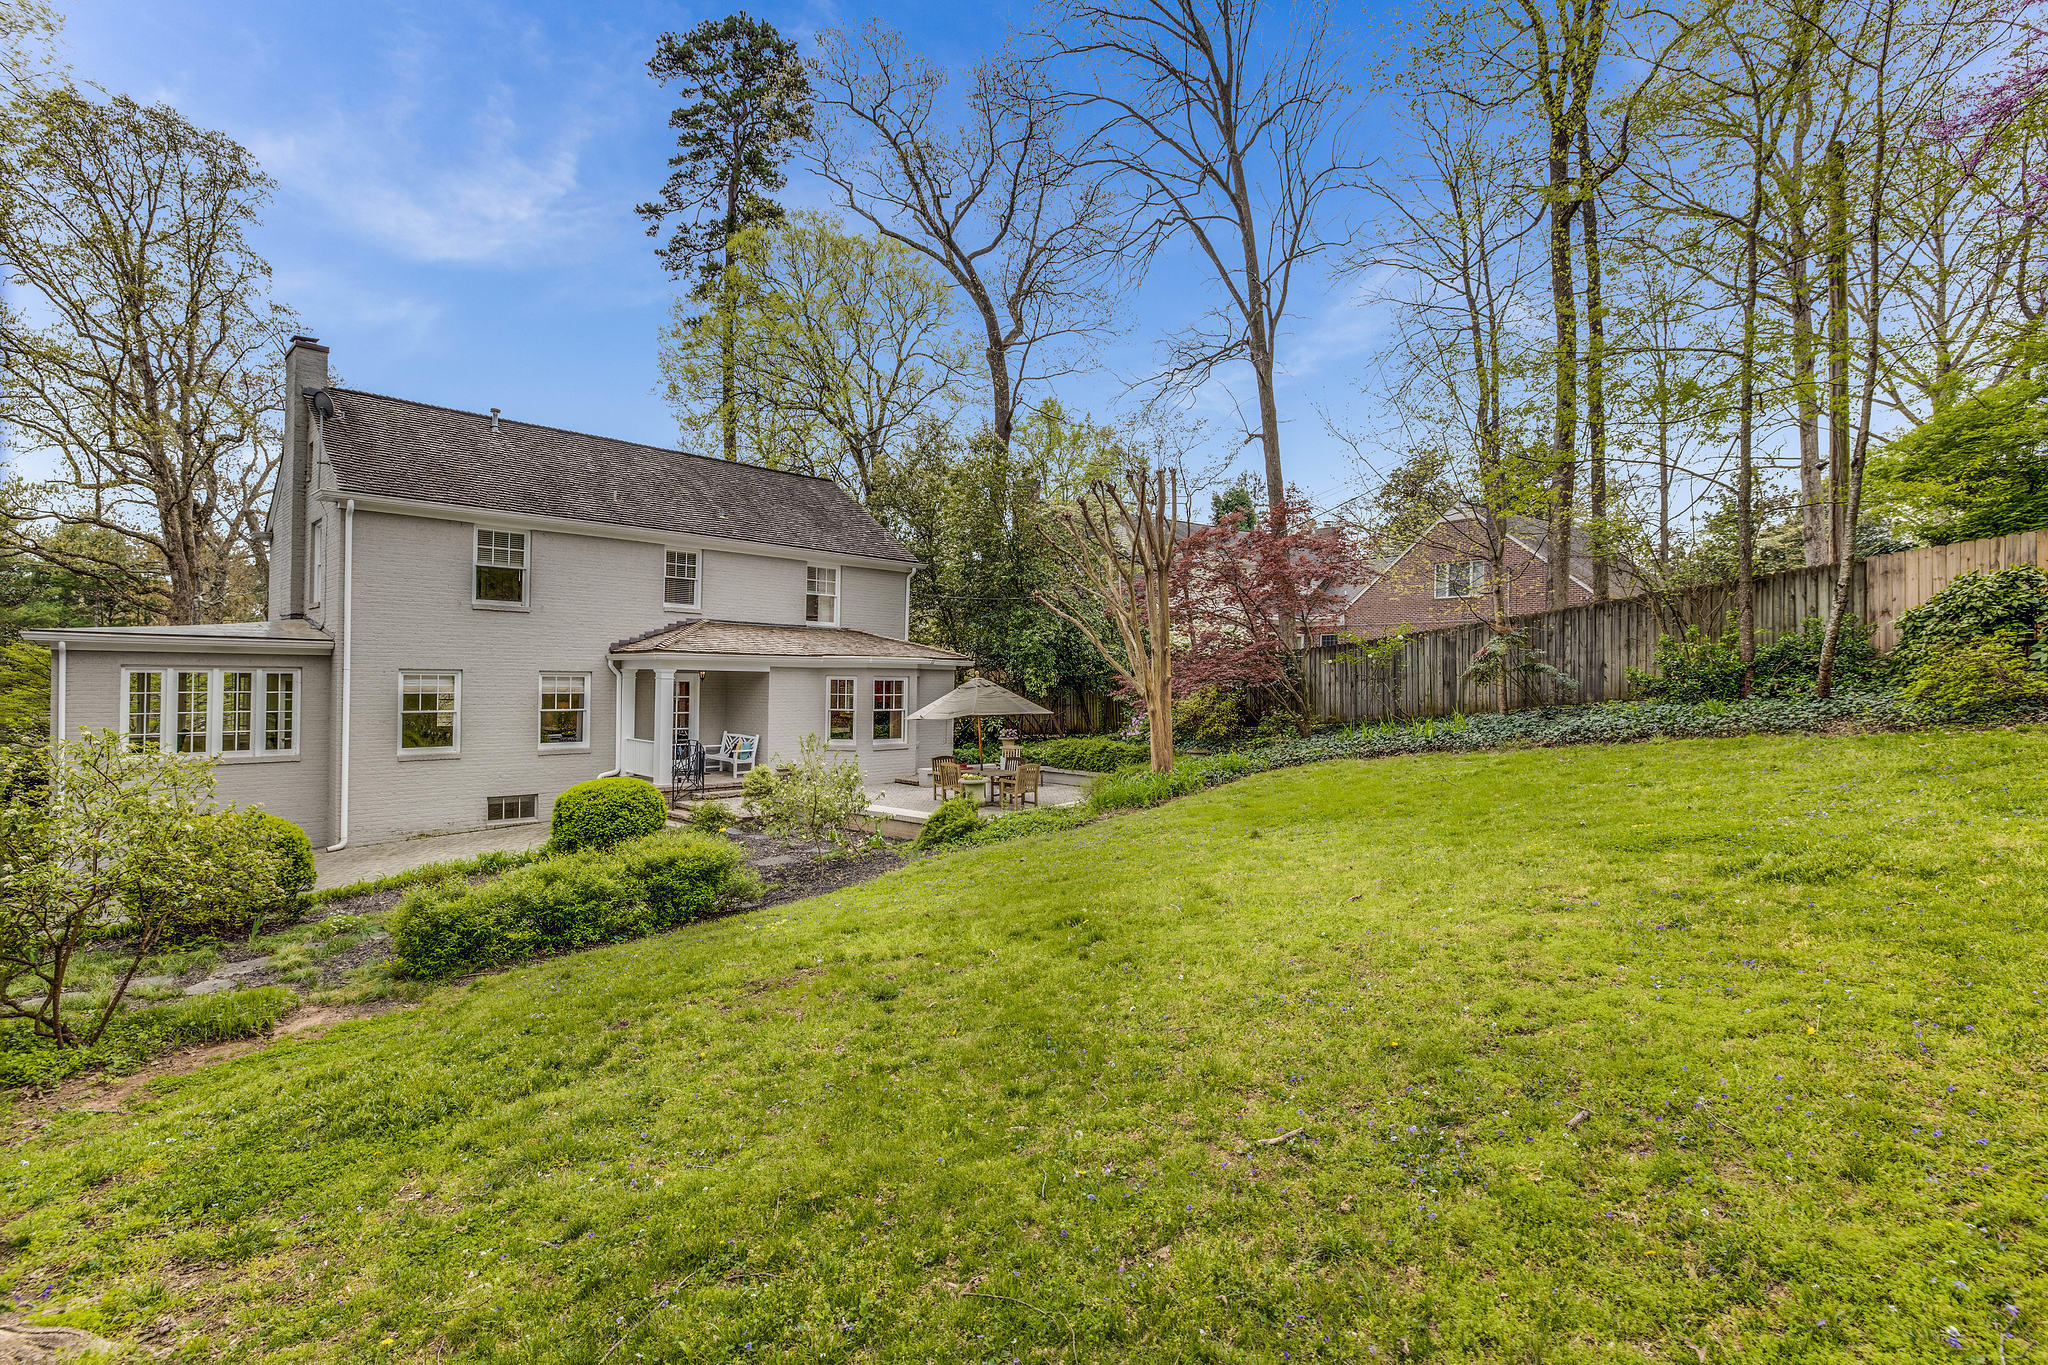 6915 Stone Mill Drive, Knoxville, Tennessee 37919, 3 Bedrooms Bedrooms, ,2 BathroomsBathrooms,Single Family,For Sale,Stone Mill,1112188